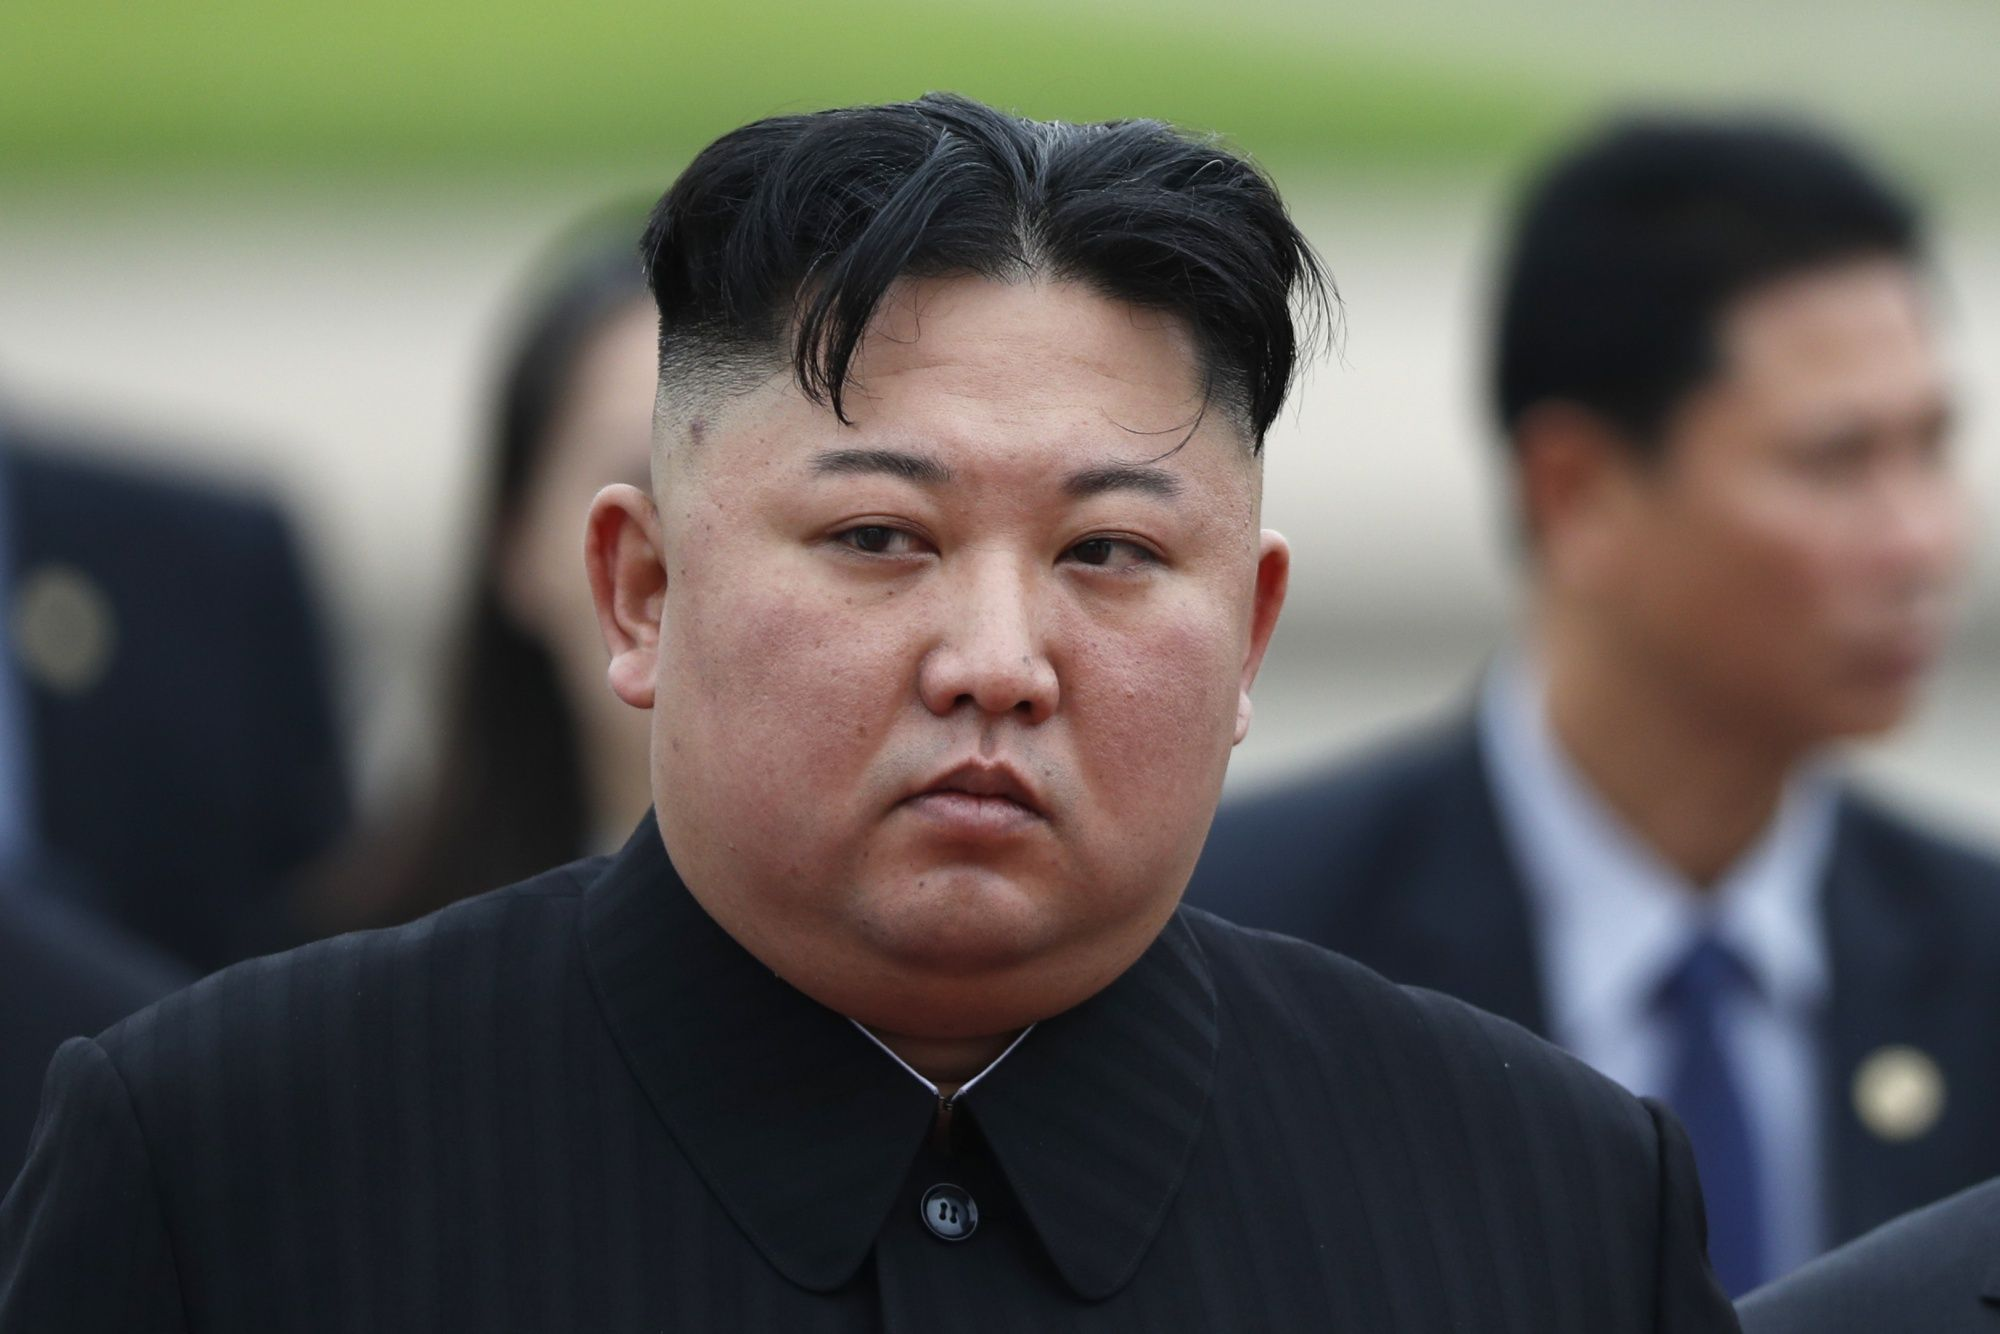 Kim Jong Un Says North Korean Missile Test Sends Warning to U.S